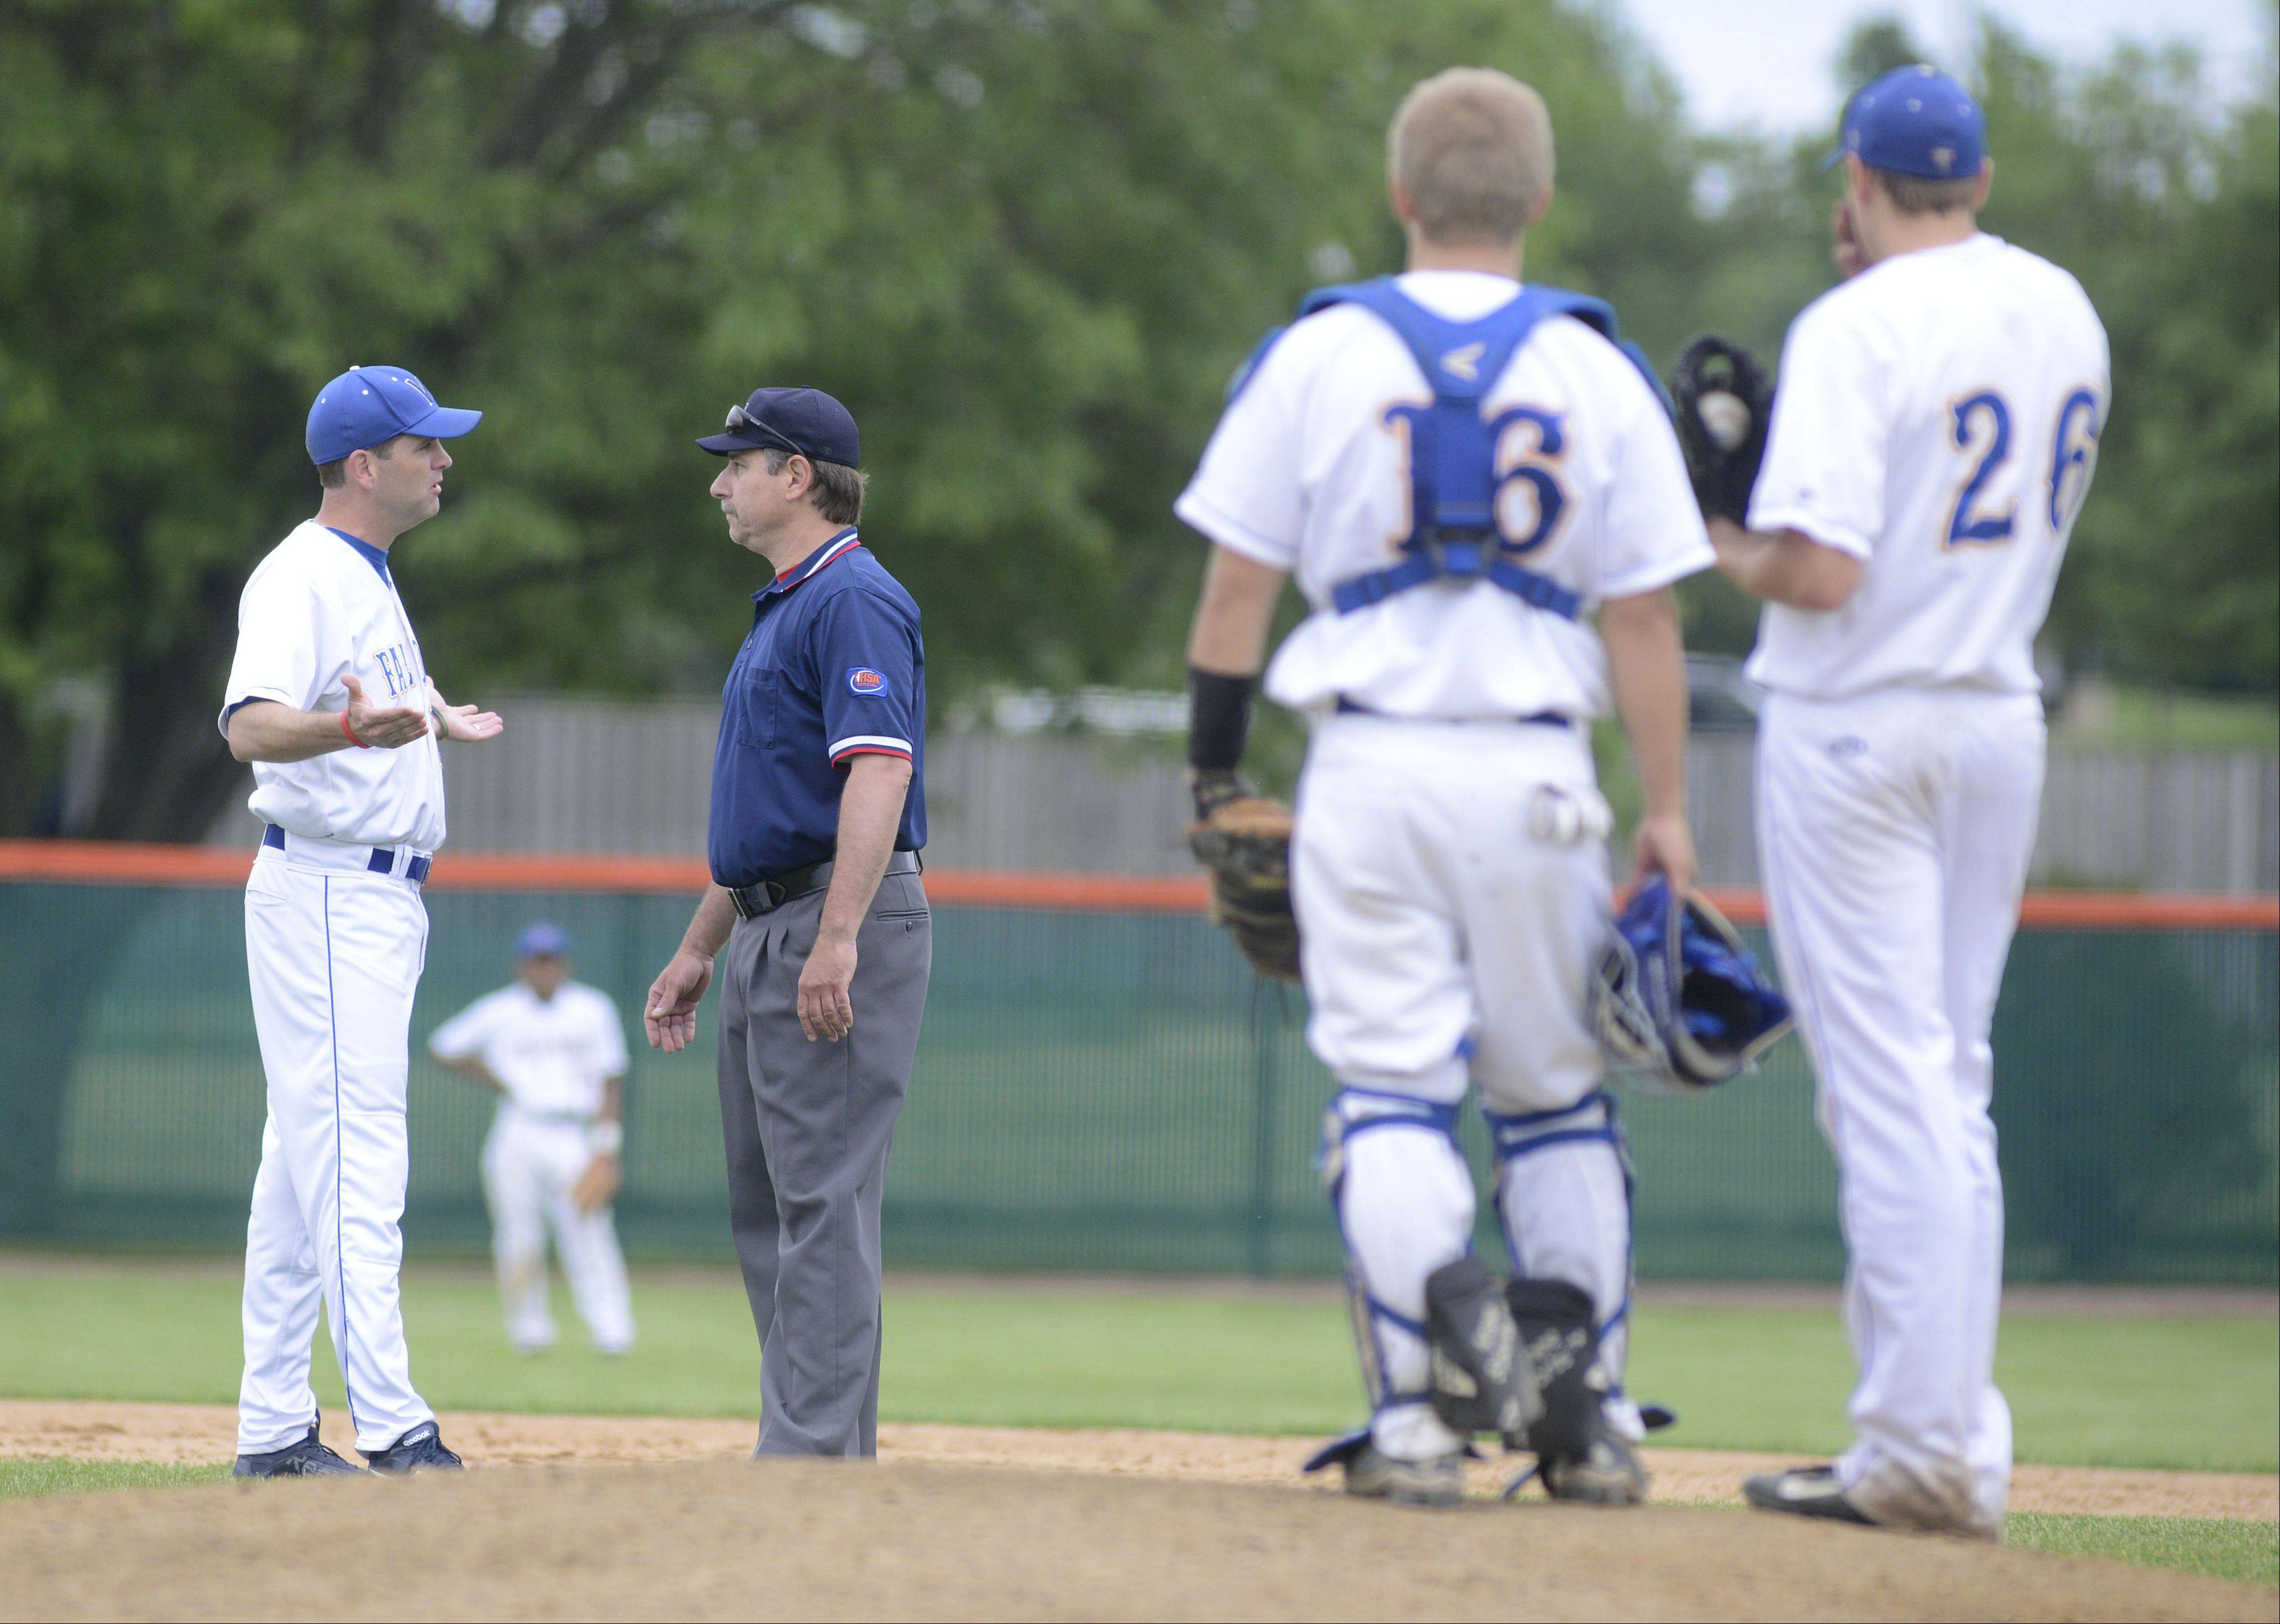 Wheaton North coach Dan Schoessling disputes a call by an umpire after St. Charles East scored a run in the fifth inning of the Class 4A sectional championship in St. Charles on Saturday, June 1.